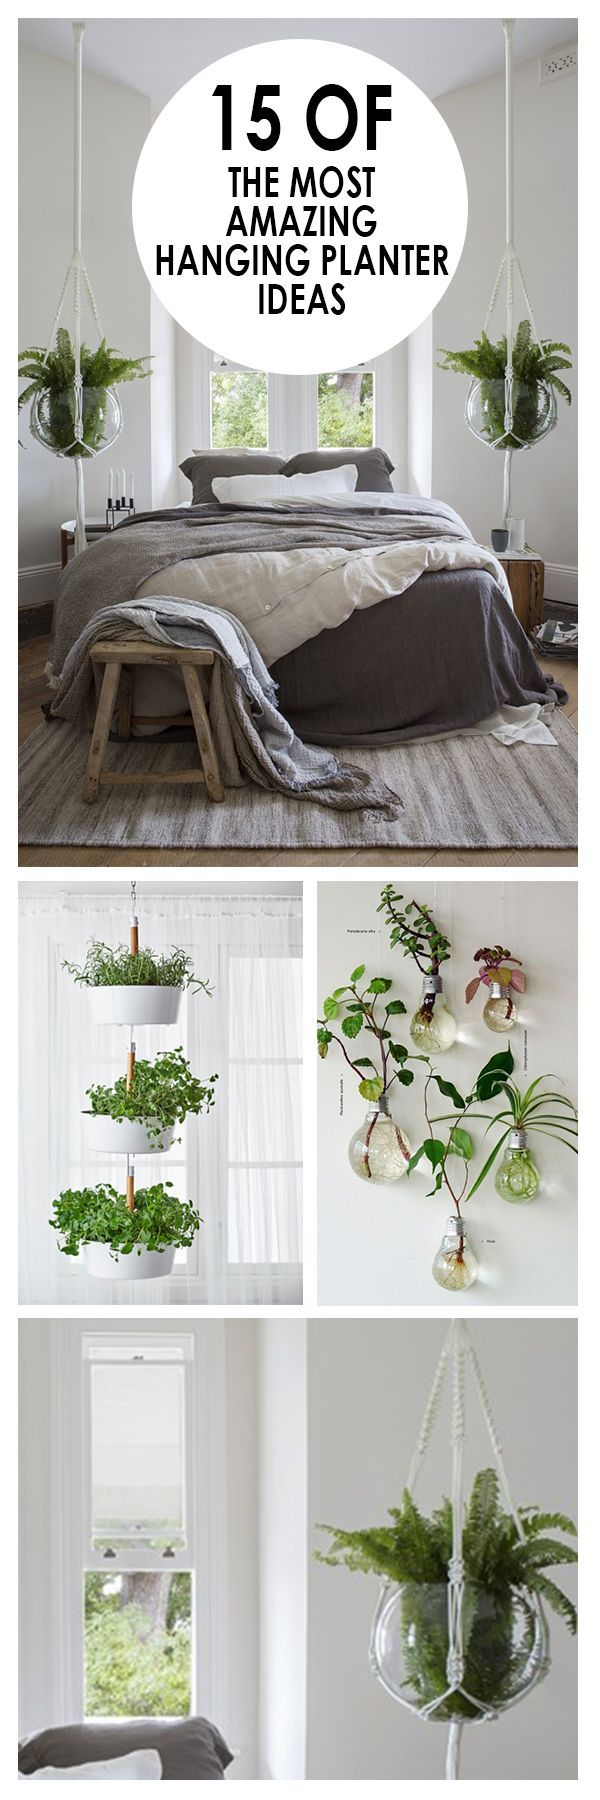 die besten 25 h ngendes terrarium ideen auf pinterest terrarium glasterrarium und h ngepflanzen. Black Bedroom Furniture Sets. Home Design Ideas